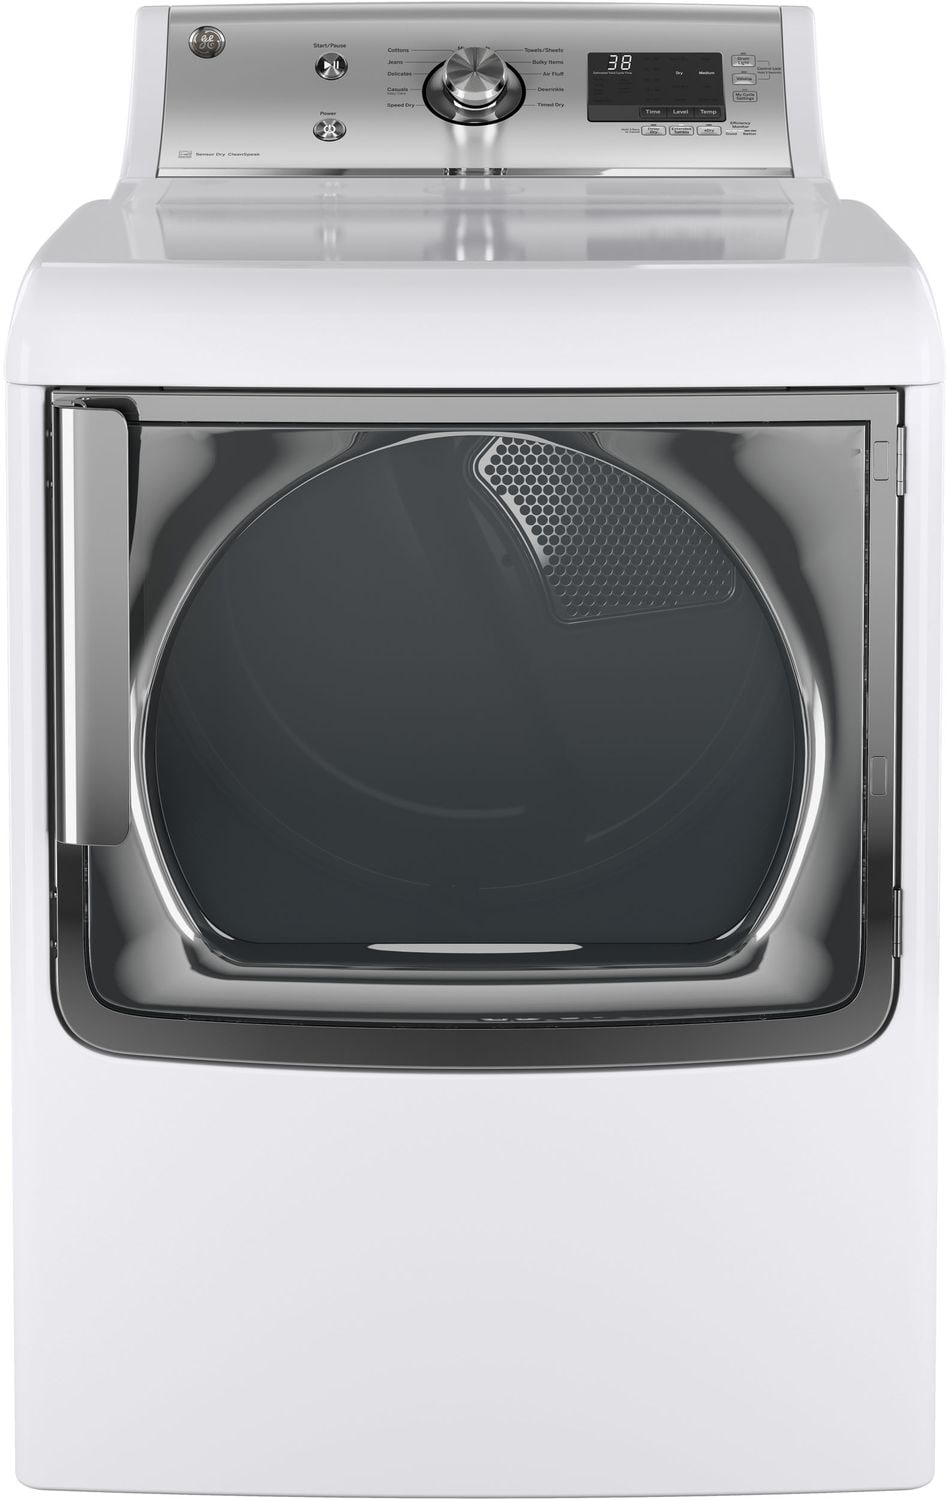 Washers and Dryers - GE 7.8 Cu. Ft. Electric Dryer – GTD81ESMJWS